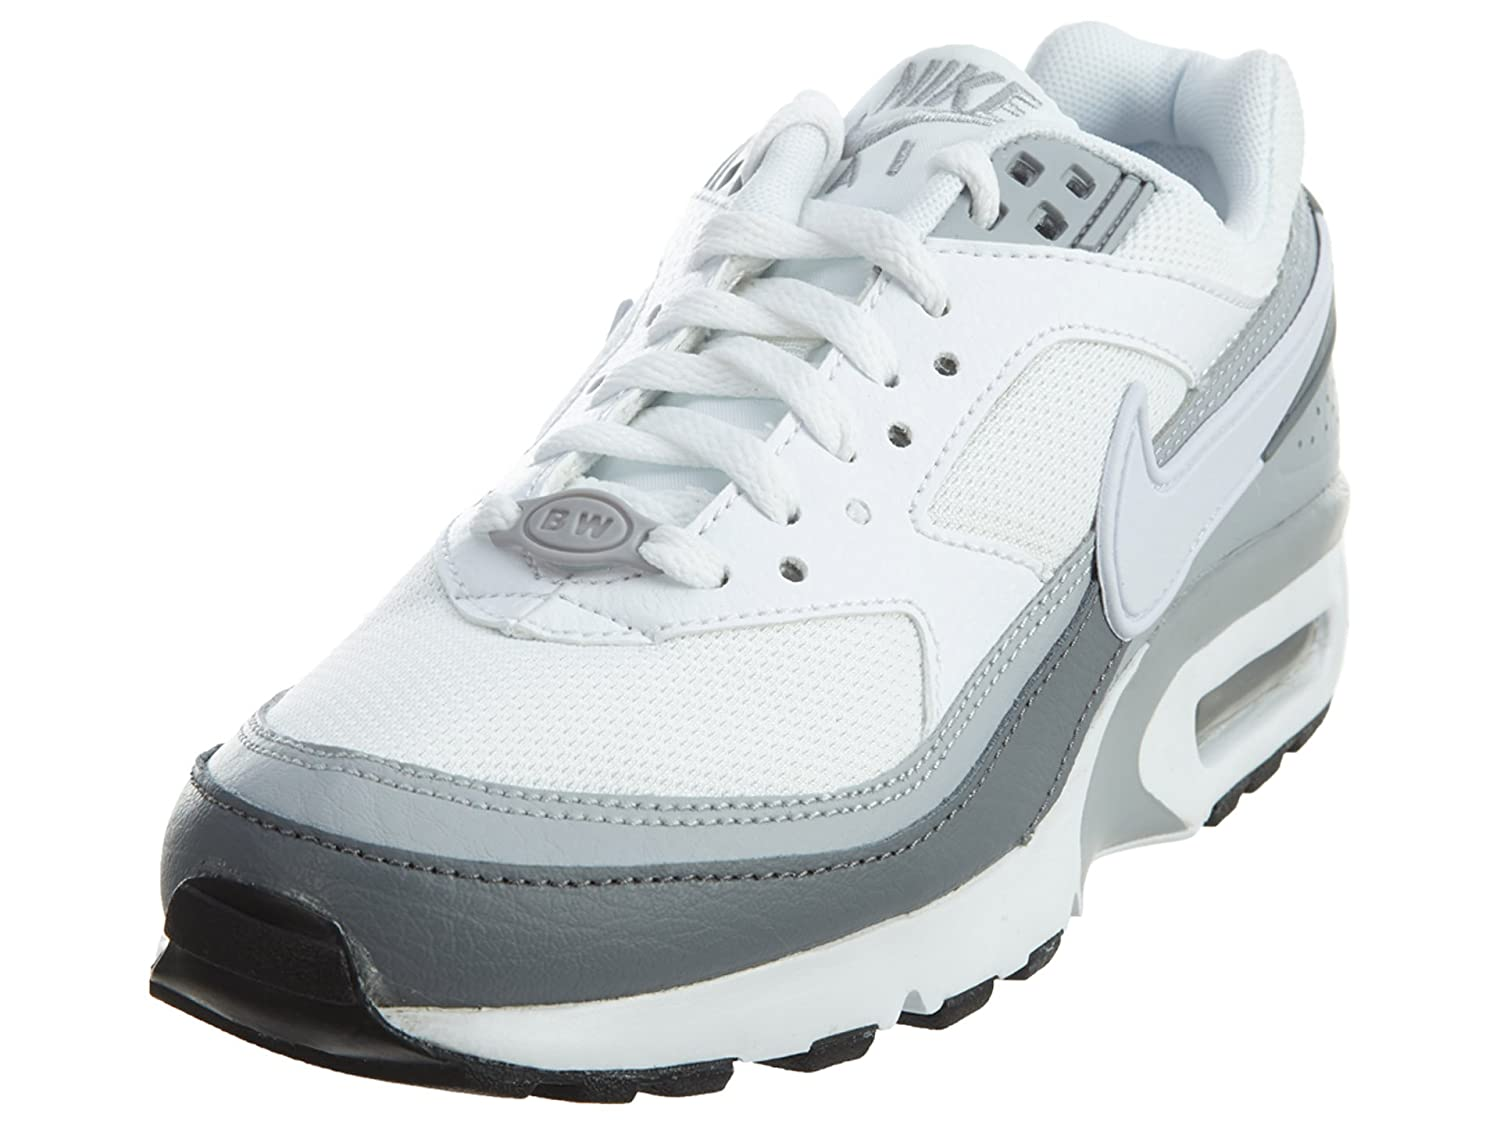 NIKE Air Max BW Boy's Running Shoes B01JJDRU9C 4.5 M US|Wolf Grey/White-cool Grey-black